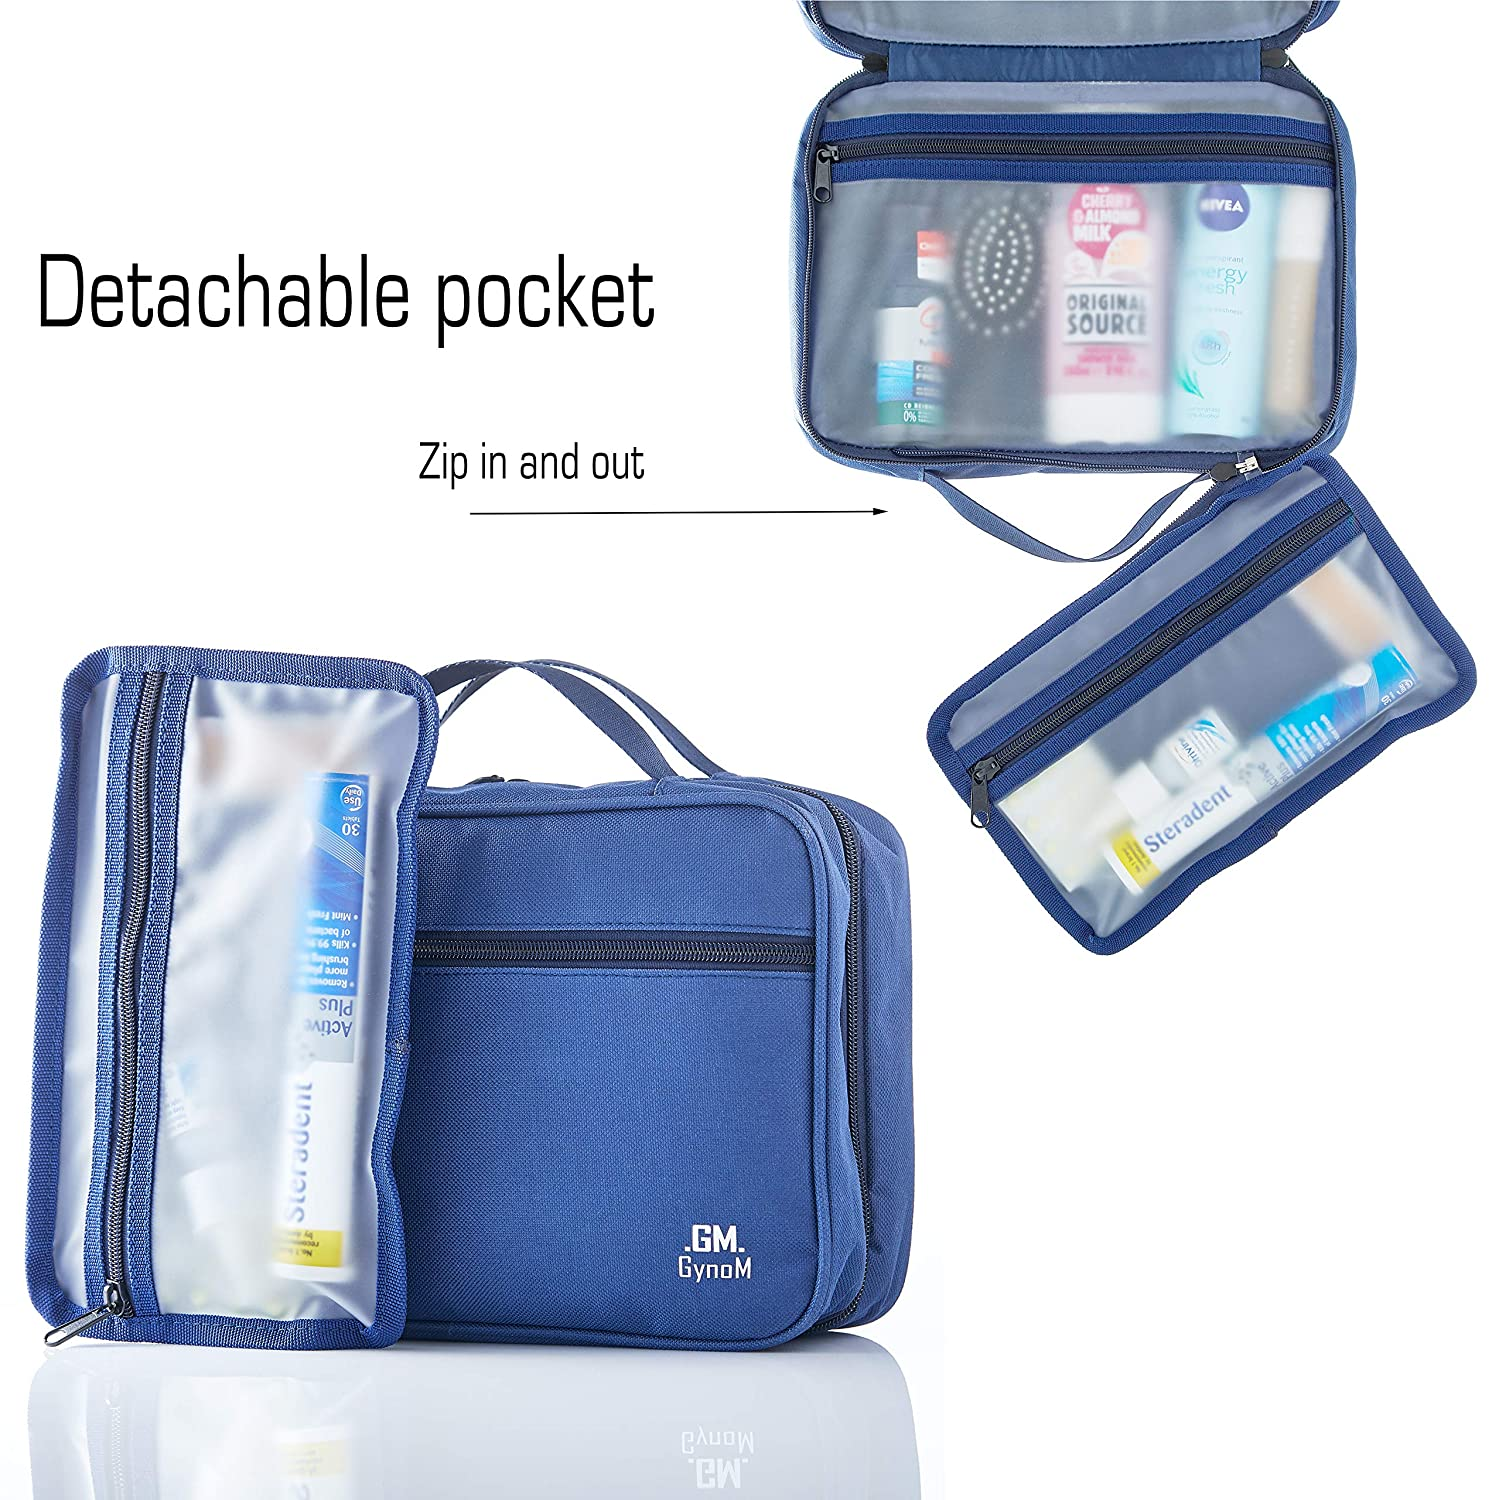 68360de00272 Hanging Toiletry Travel Bag by GYNOM | Compact Toiletry Bag with Waterproof  Zippered pockets, mesh...